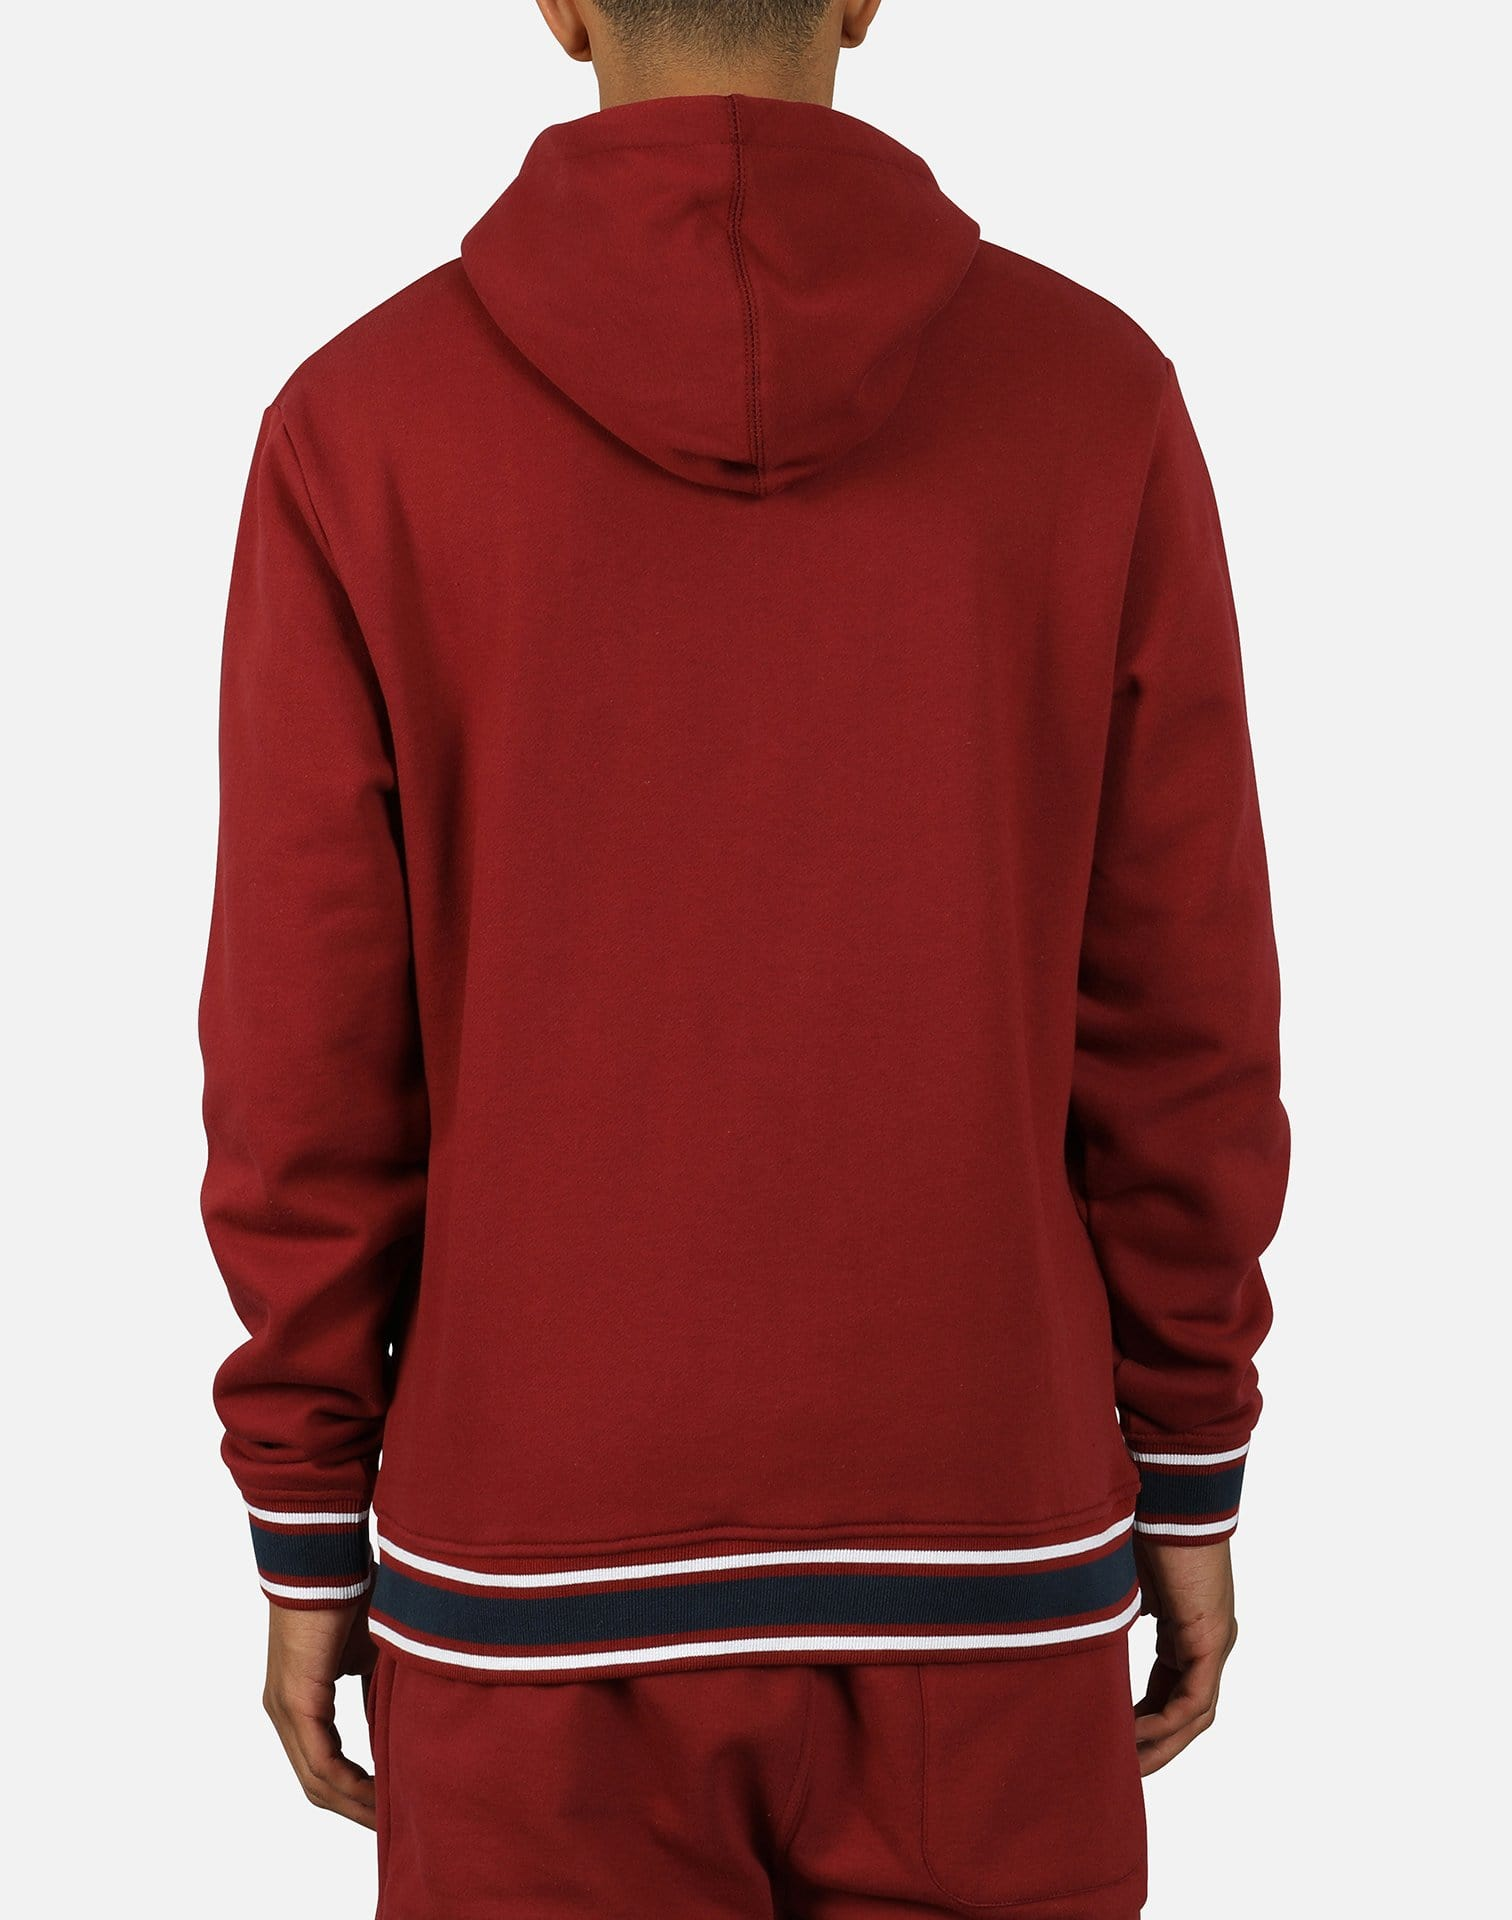 Hustle Gang Men's All Season Neuvo Hoodie